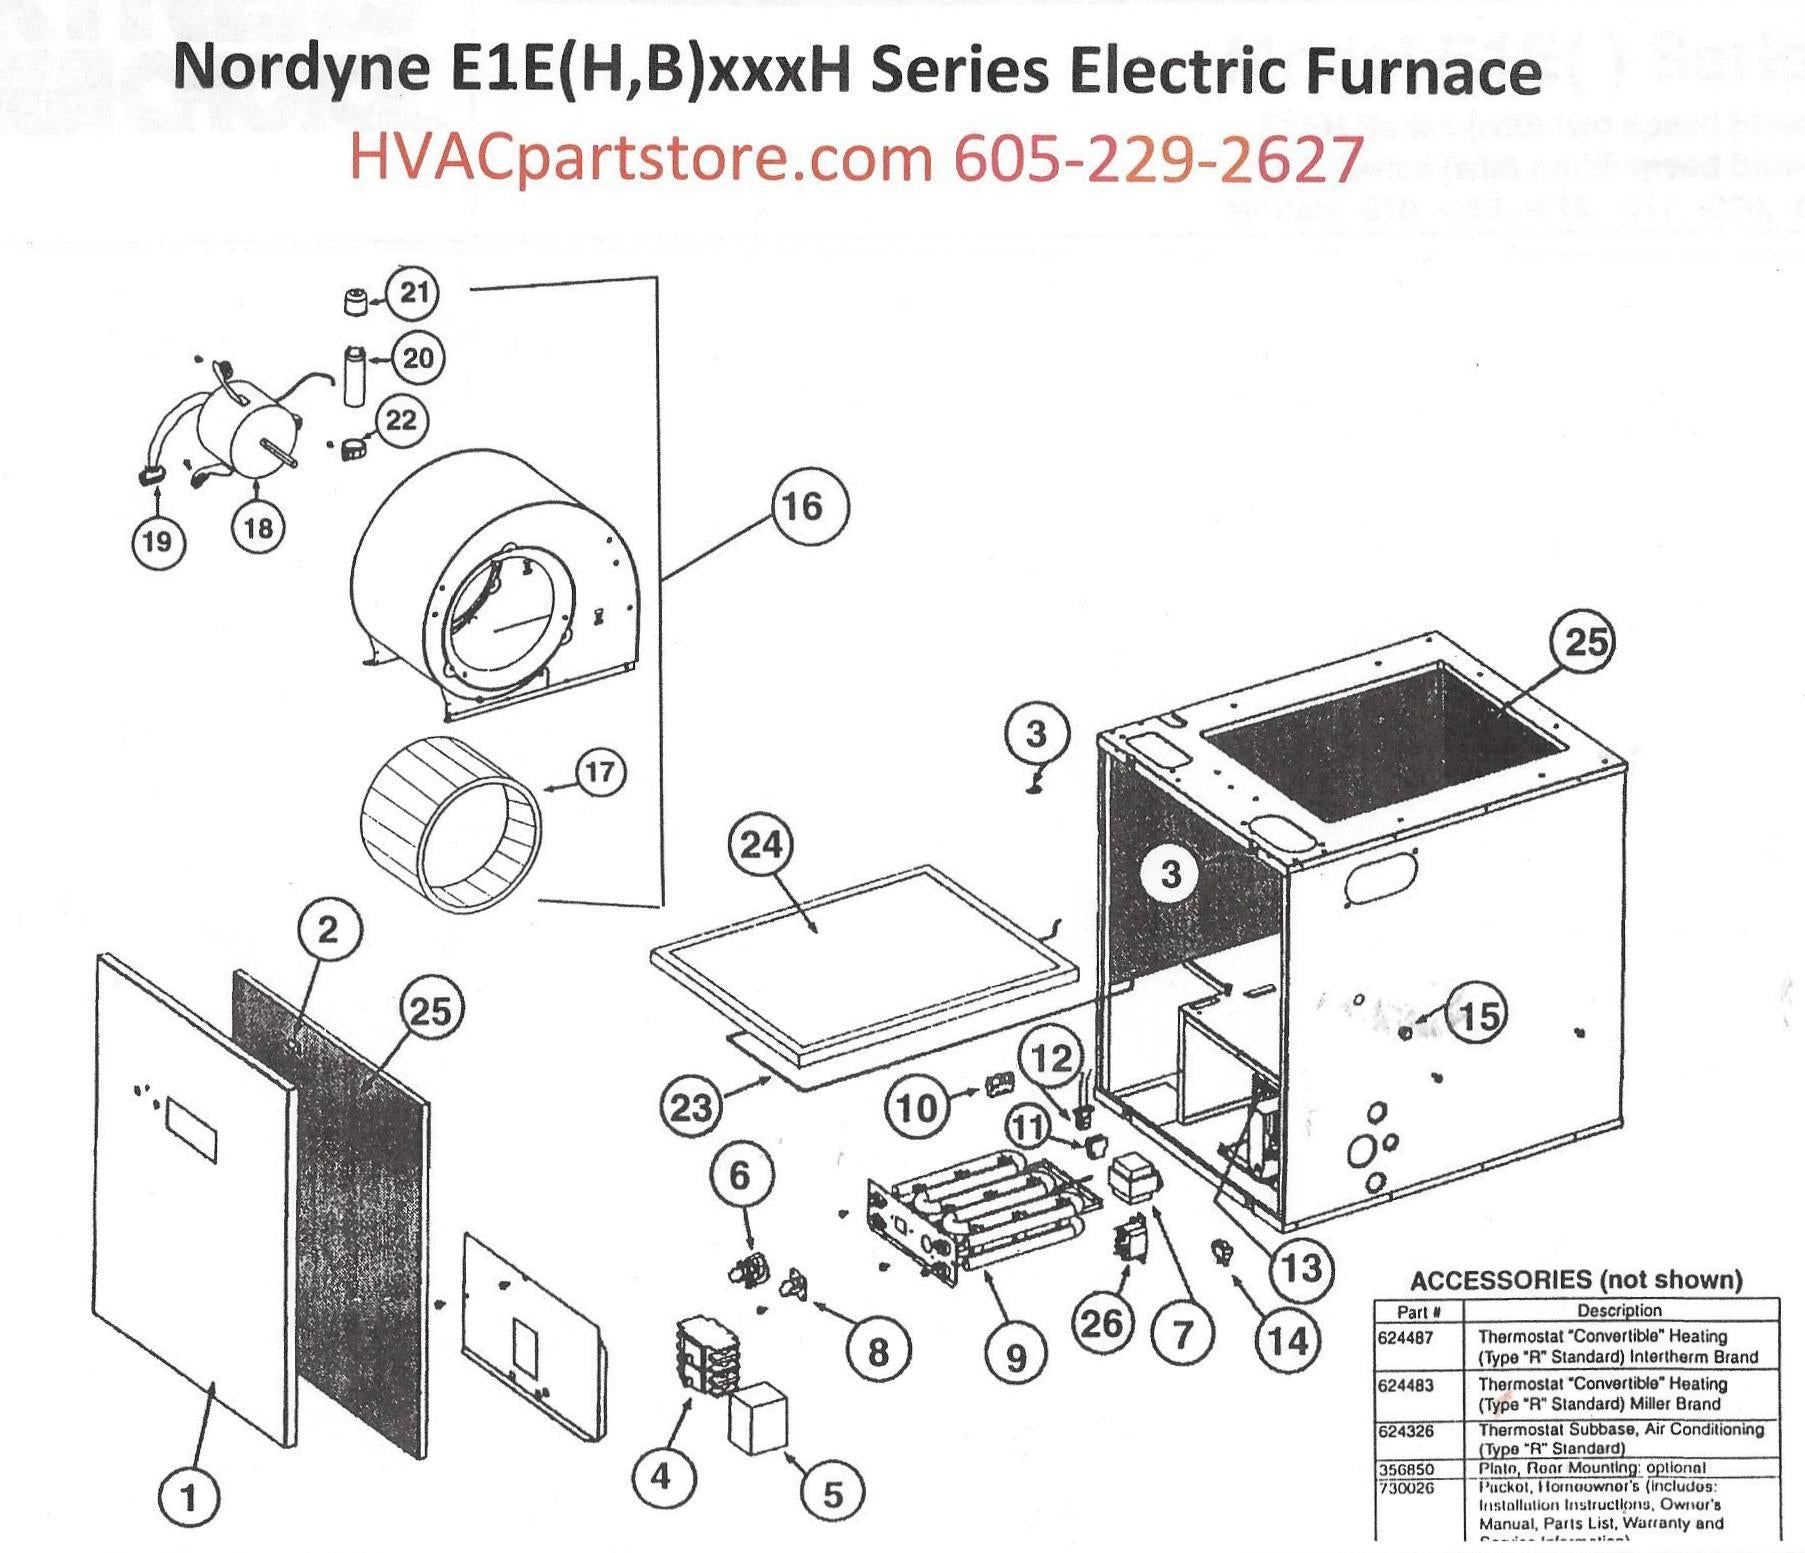 E1eh012h Nordyne Electric Furnace Parts  U2013 Hvacpartstore